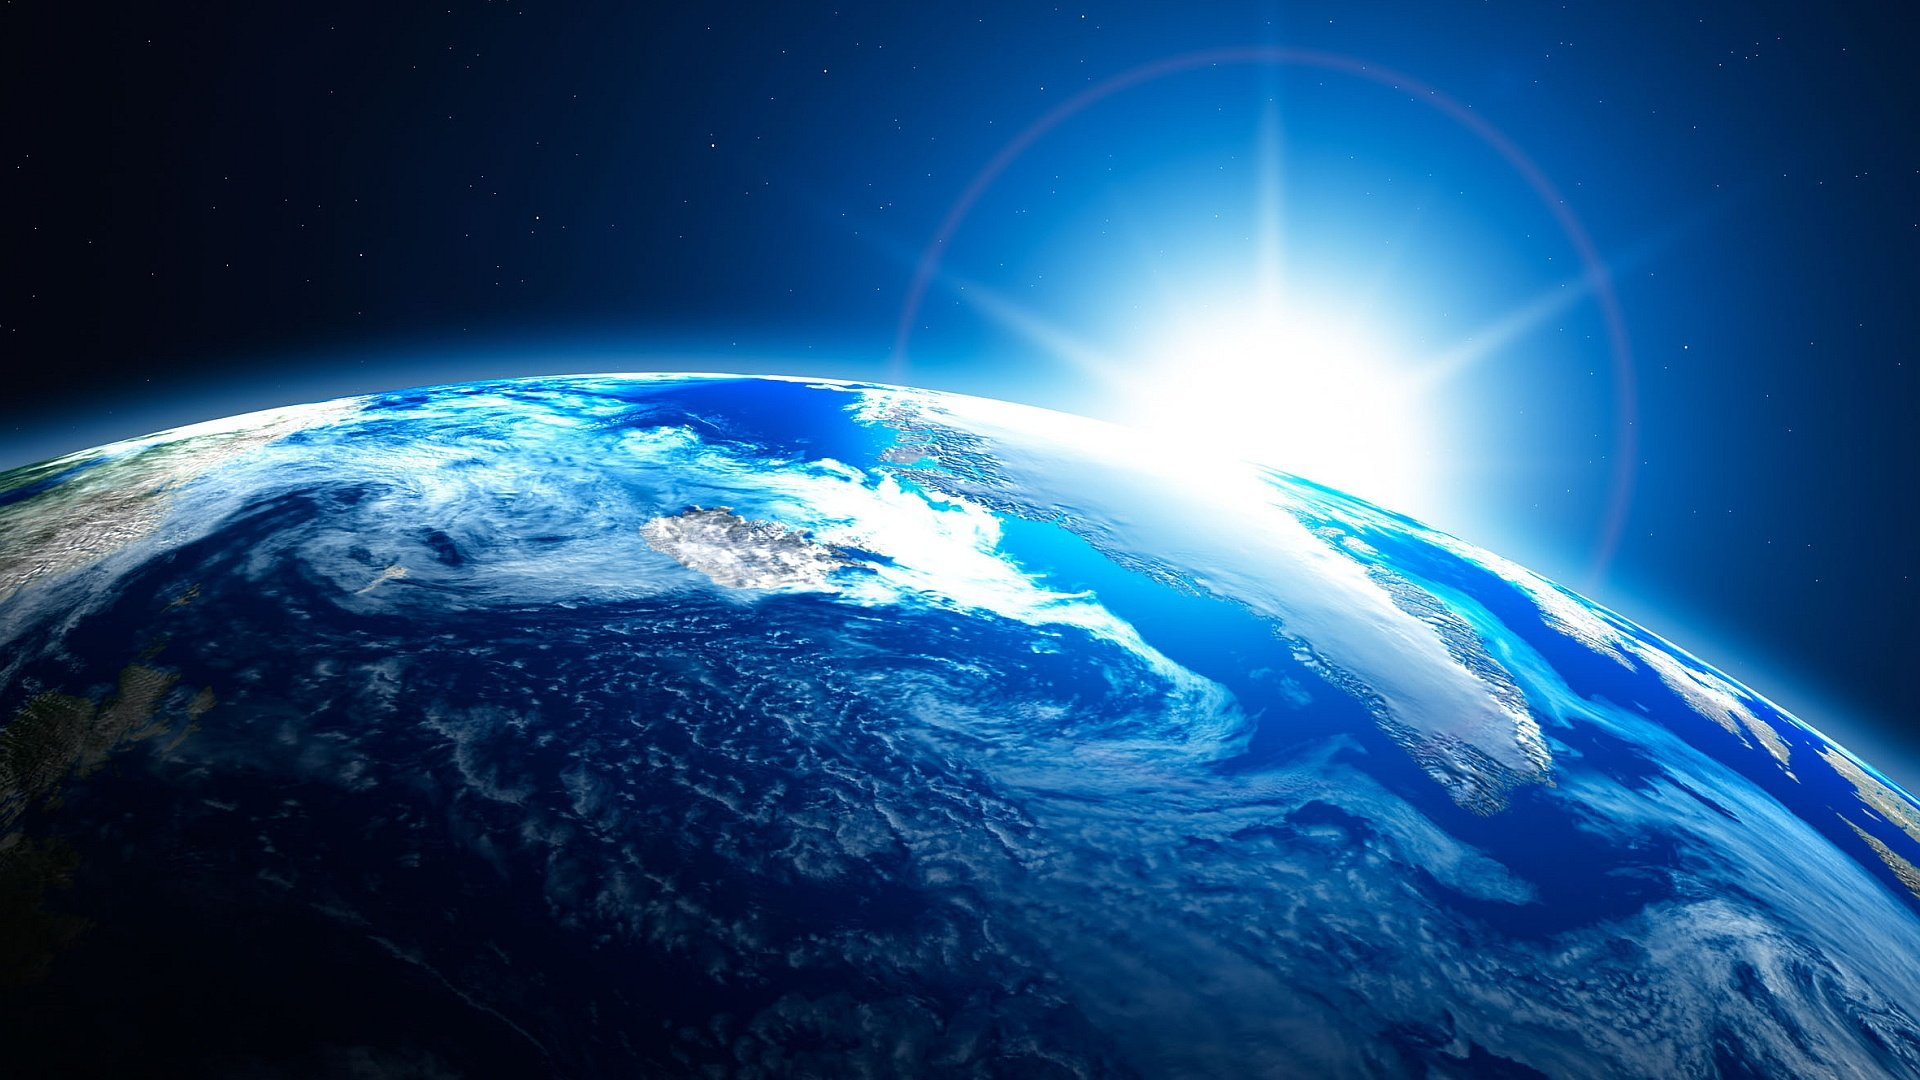 Free Download Awesome Planet Earth Wallpaper Hd 14 High Resolution